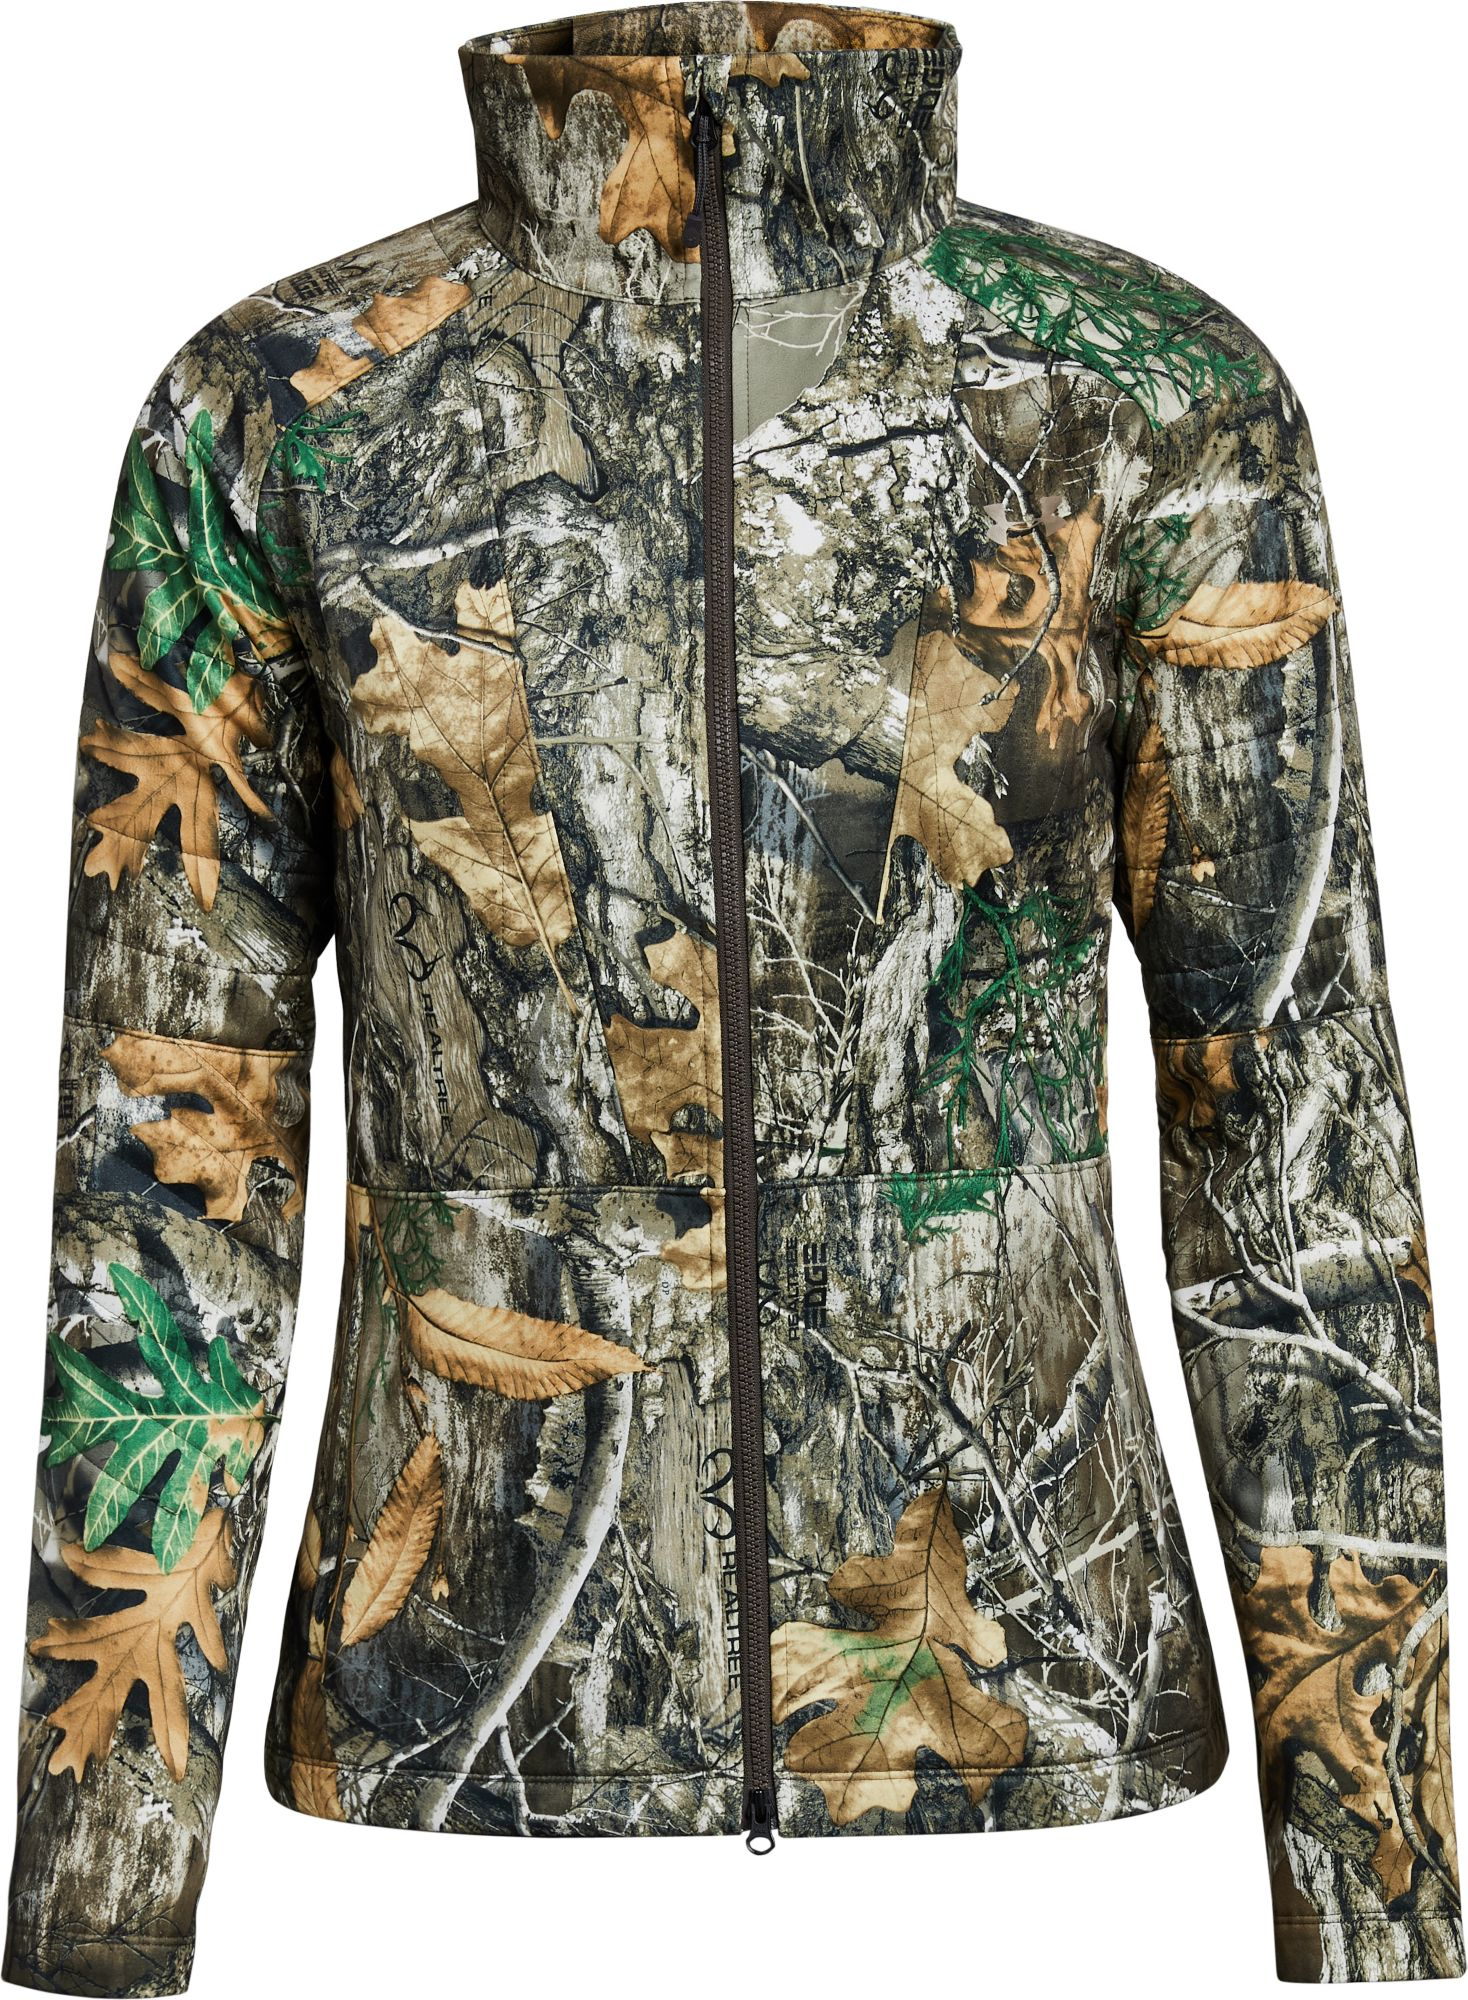 Under Armour Women's Brow Tine Hunting Jacket, Size: Small, Multi thumbnail